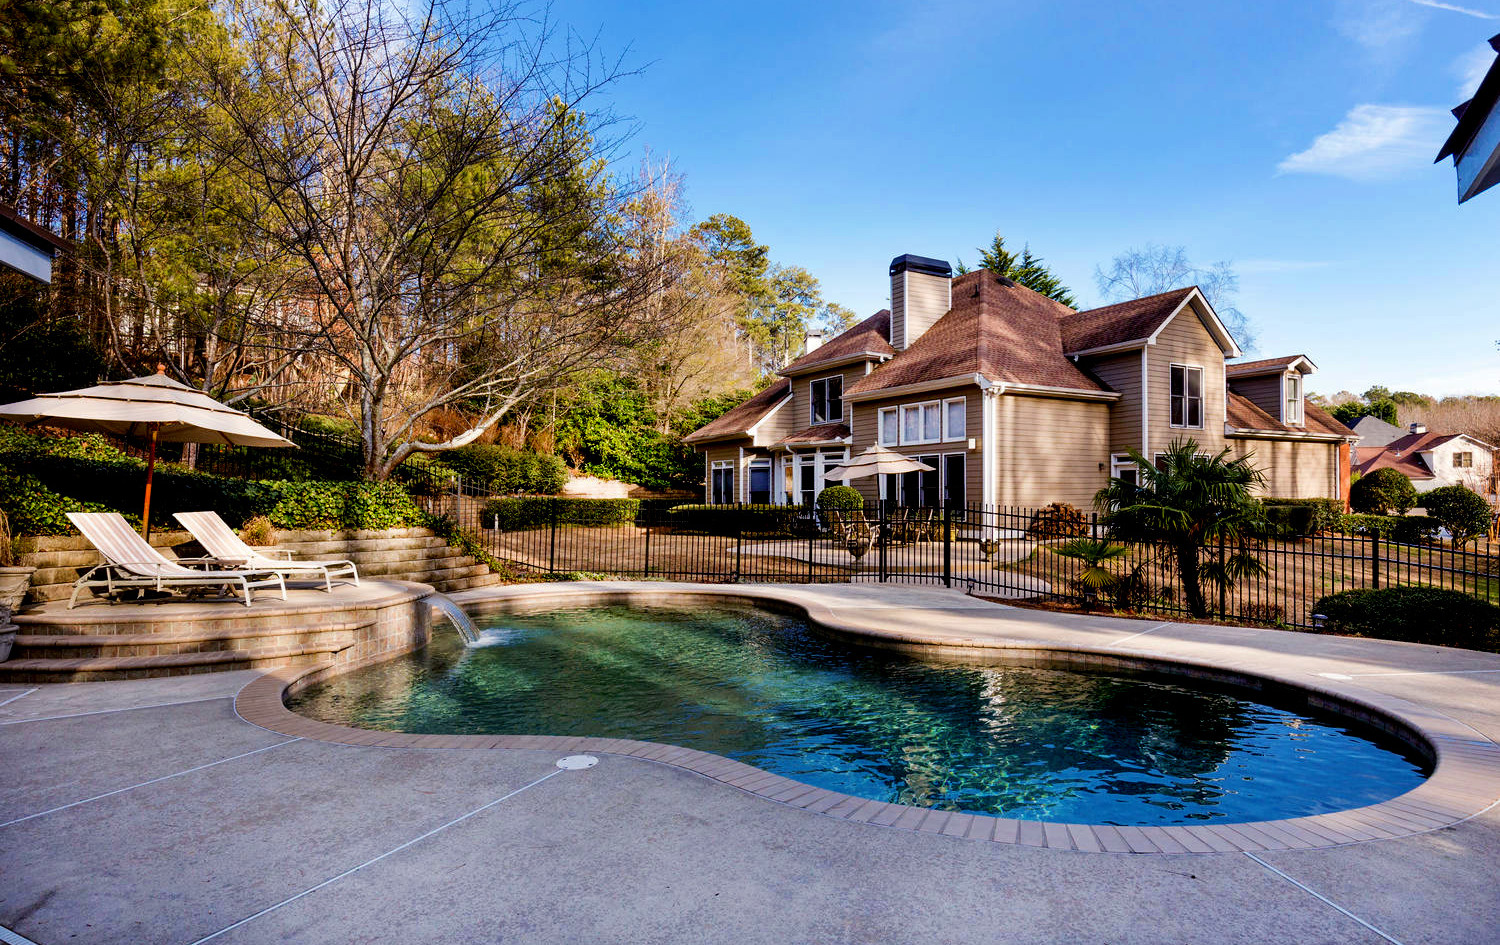 SOLD for $556,500 - Represented Seller